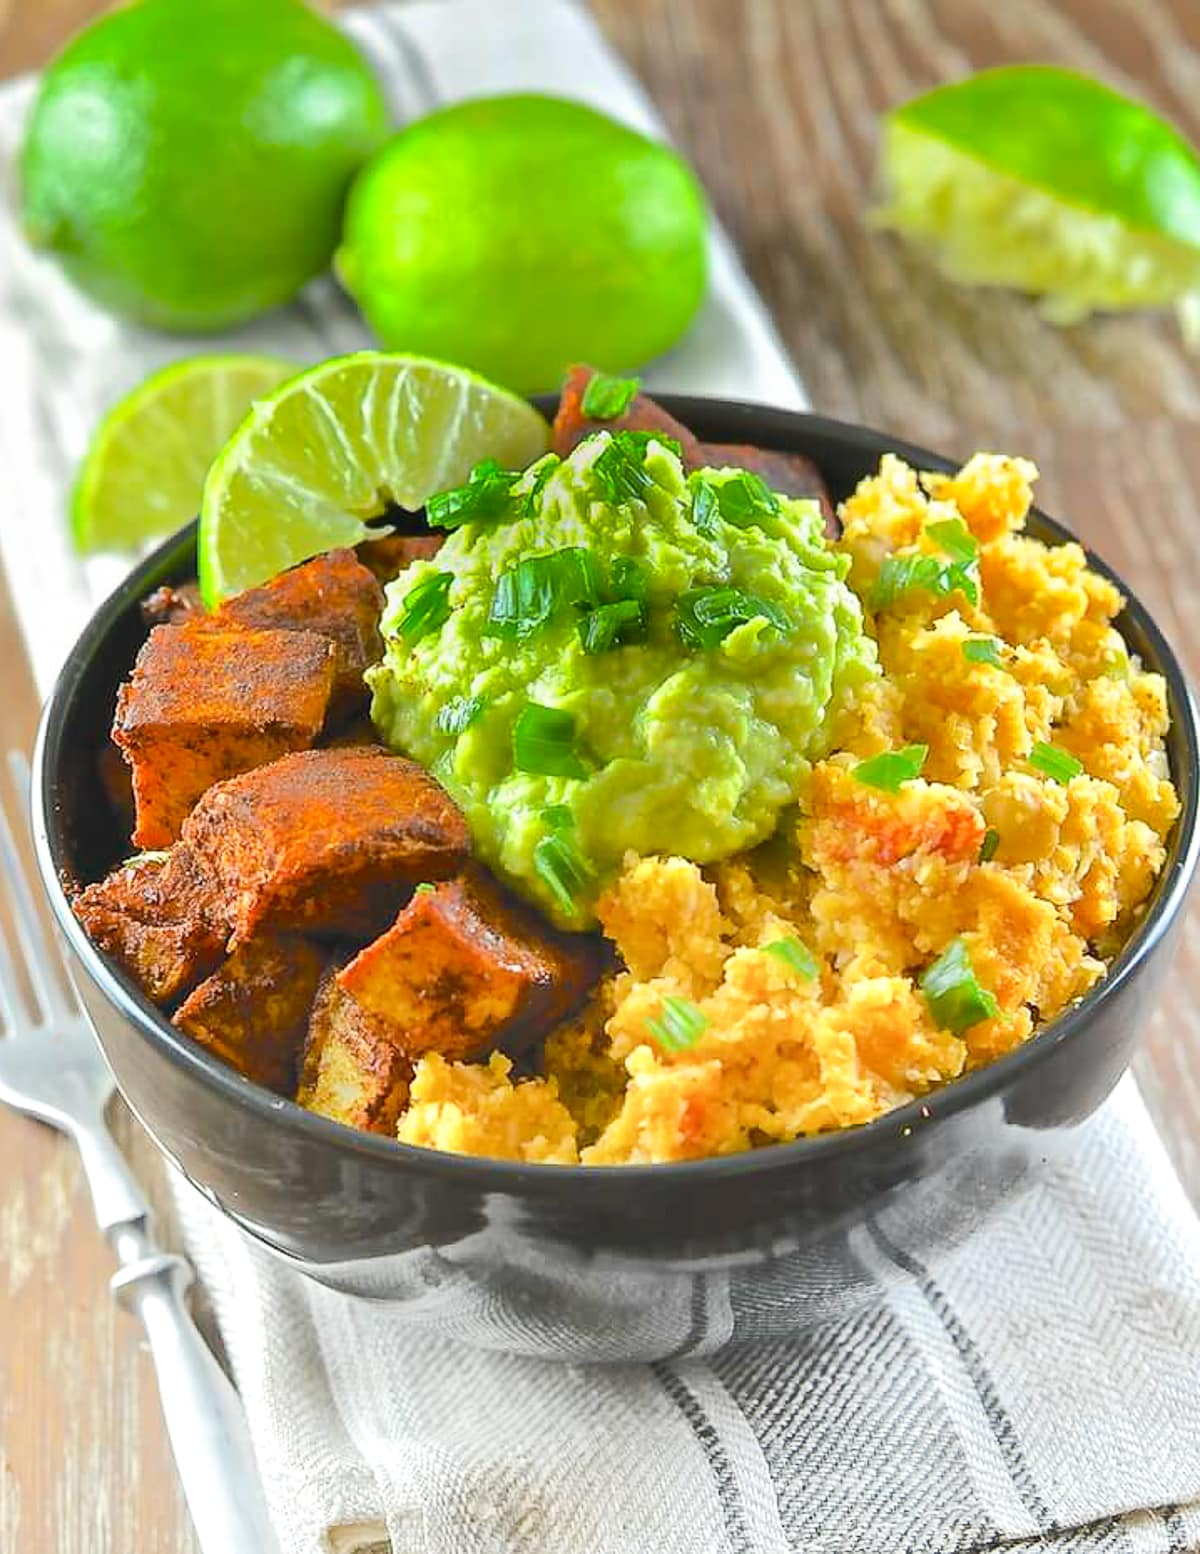 a bowl full of cauliflower rice, sweet potatoes, and avocado mash